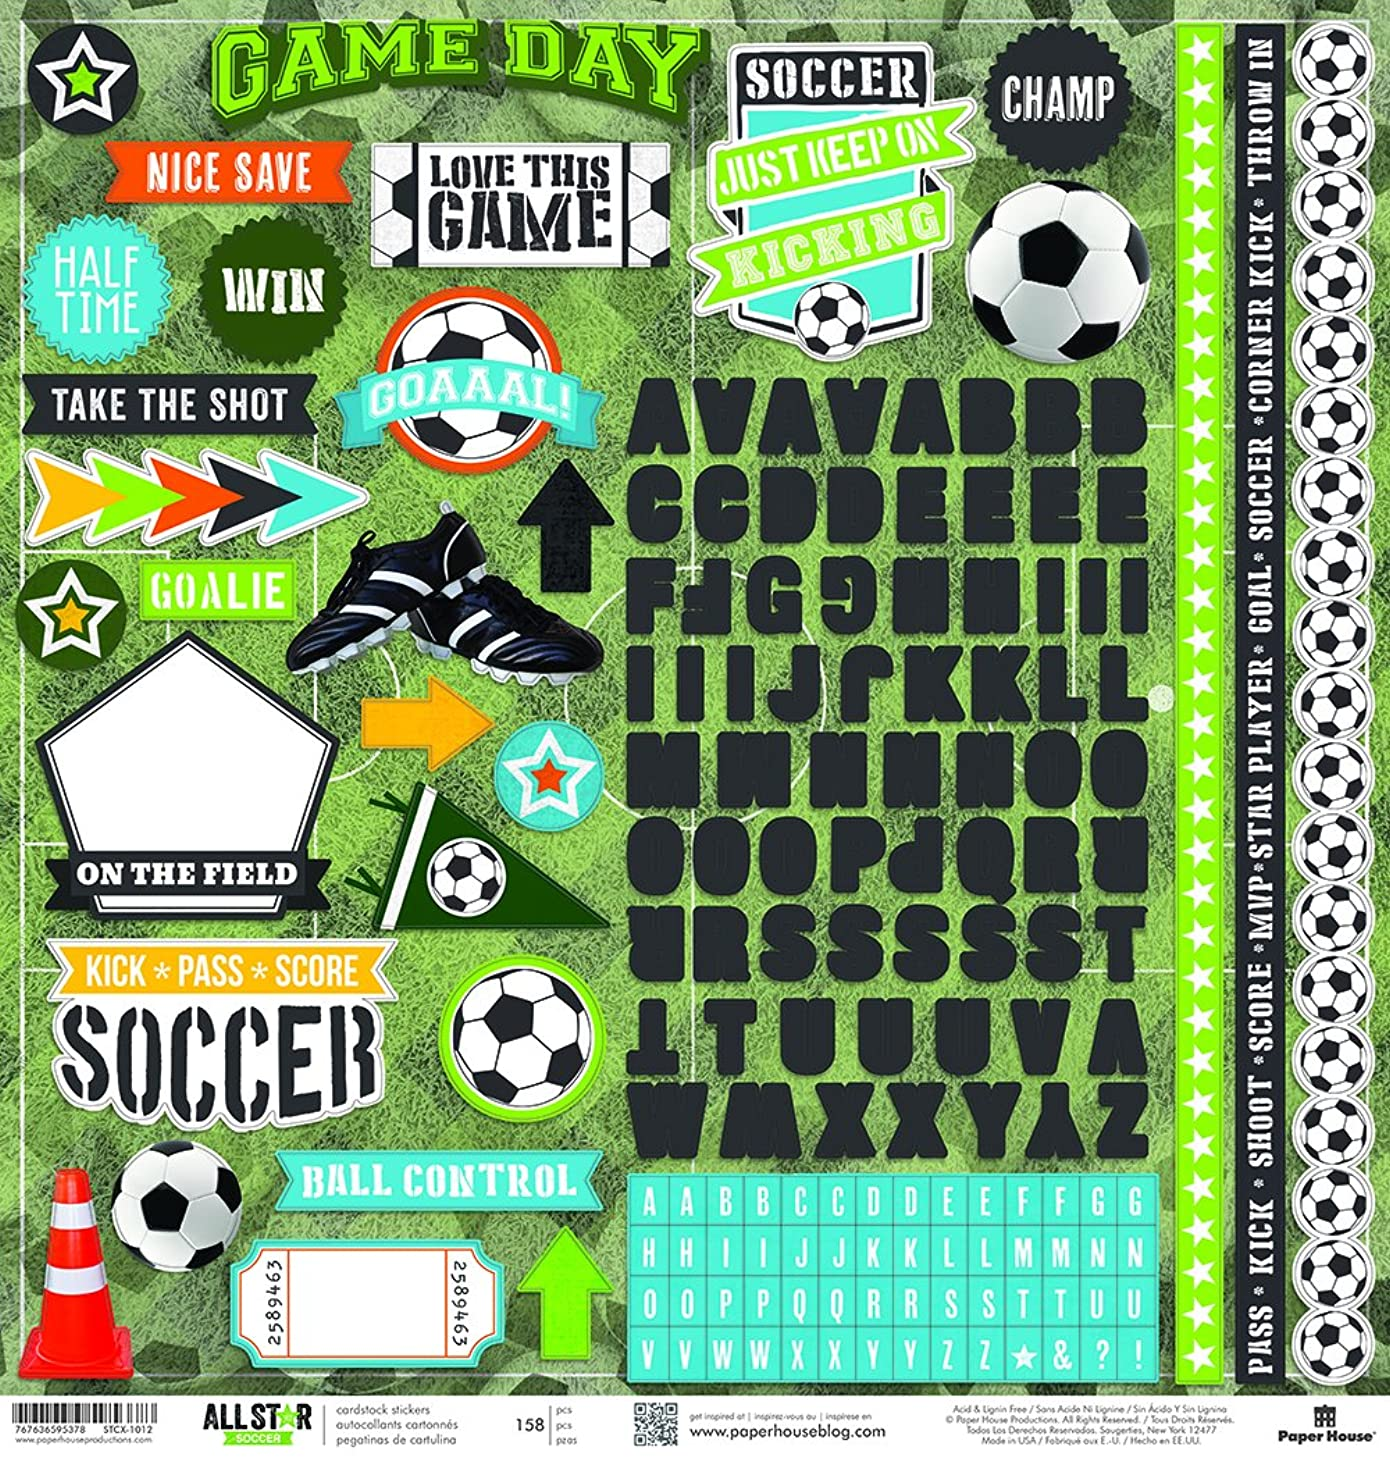 Paper House Productions STCX-1012E Soccer Cardstock Stickers 12-Inch (Pack of 6)